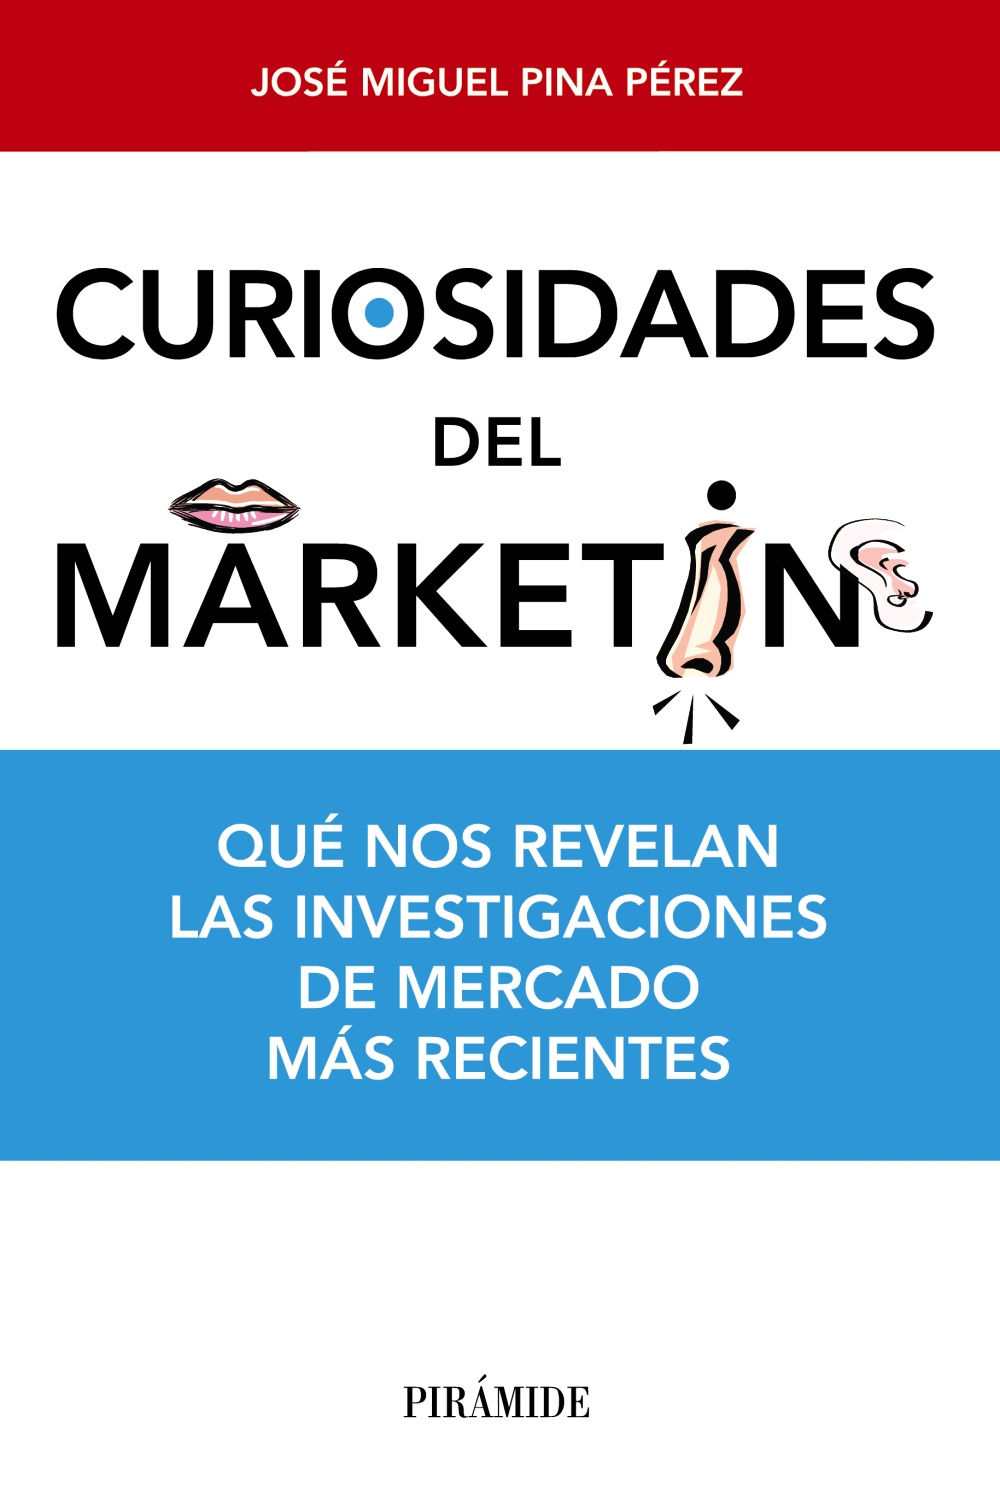 Curiosidades del marketing